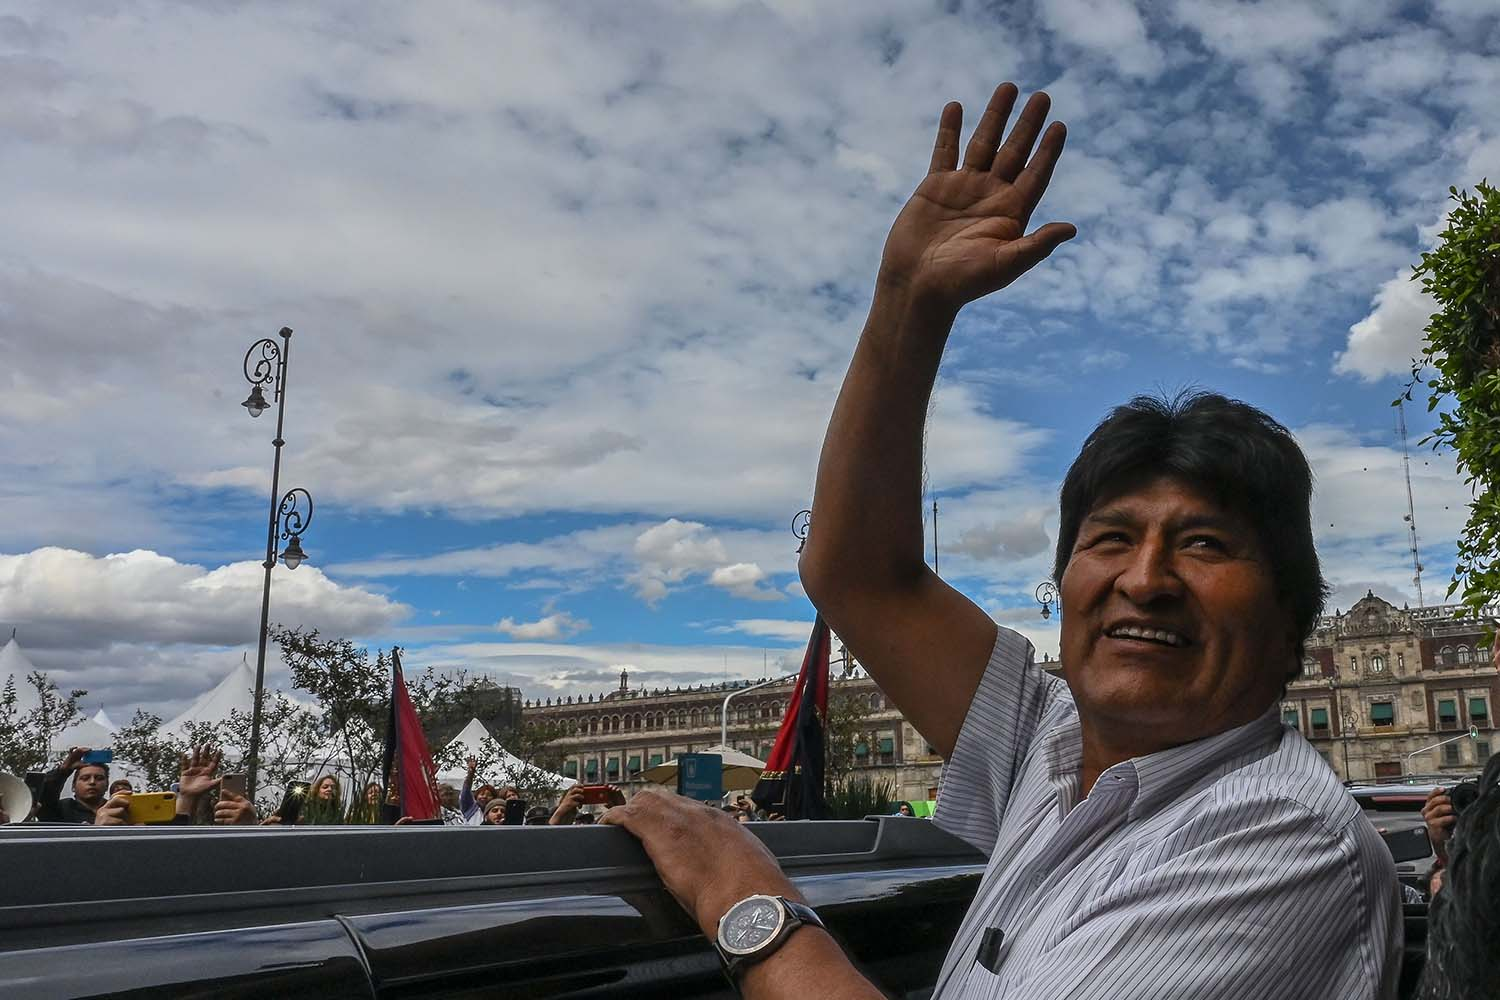 Former Bolivian President Evo Morales waves as he leaves the Historic City Hall where he was honored as a distinguished guest by Mexico City's Mayor Claudia Sheinbaum on Nov. 13. PEDRO PARDO/AFP via Getty Images